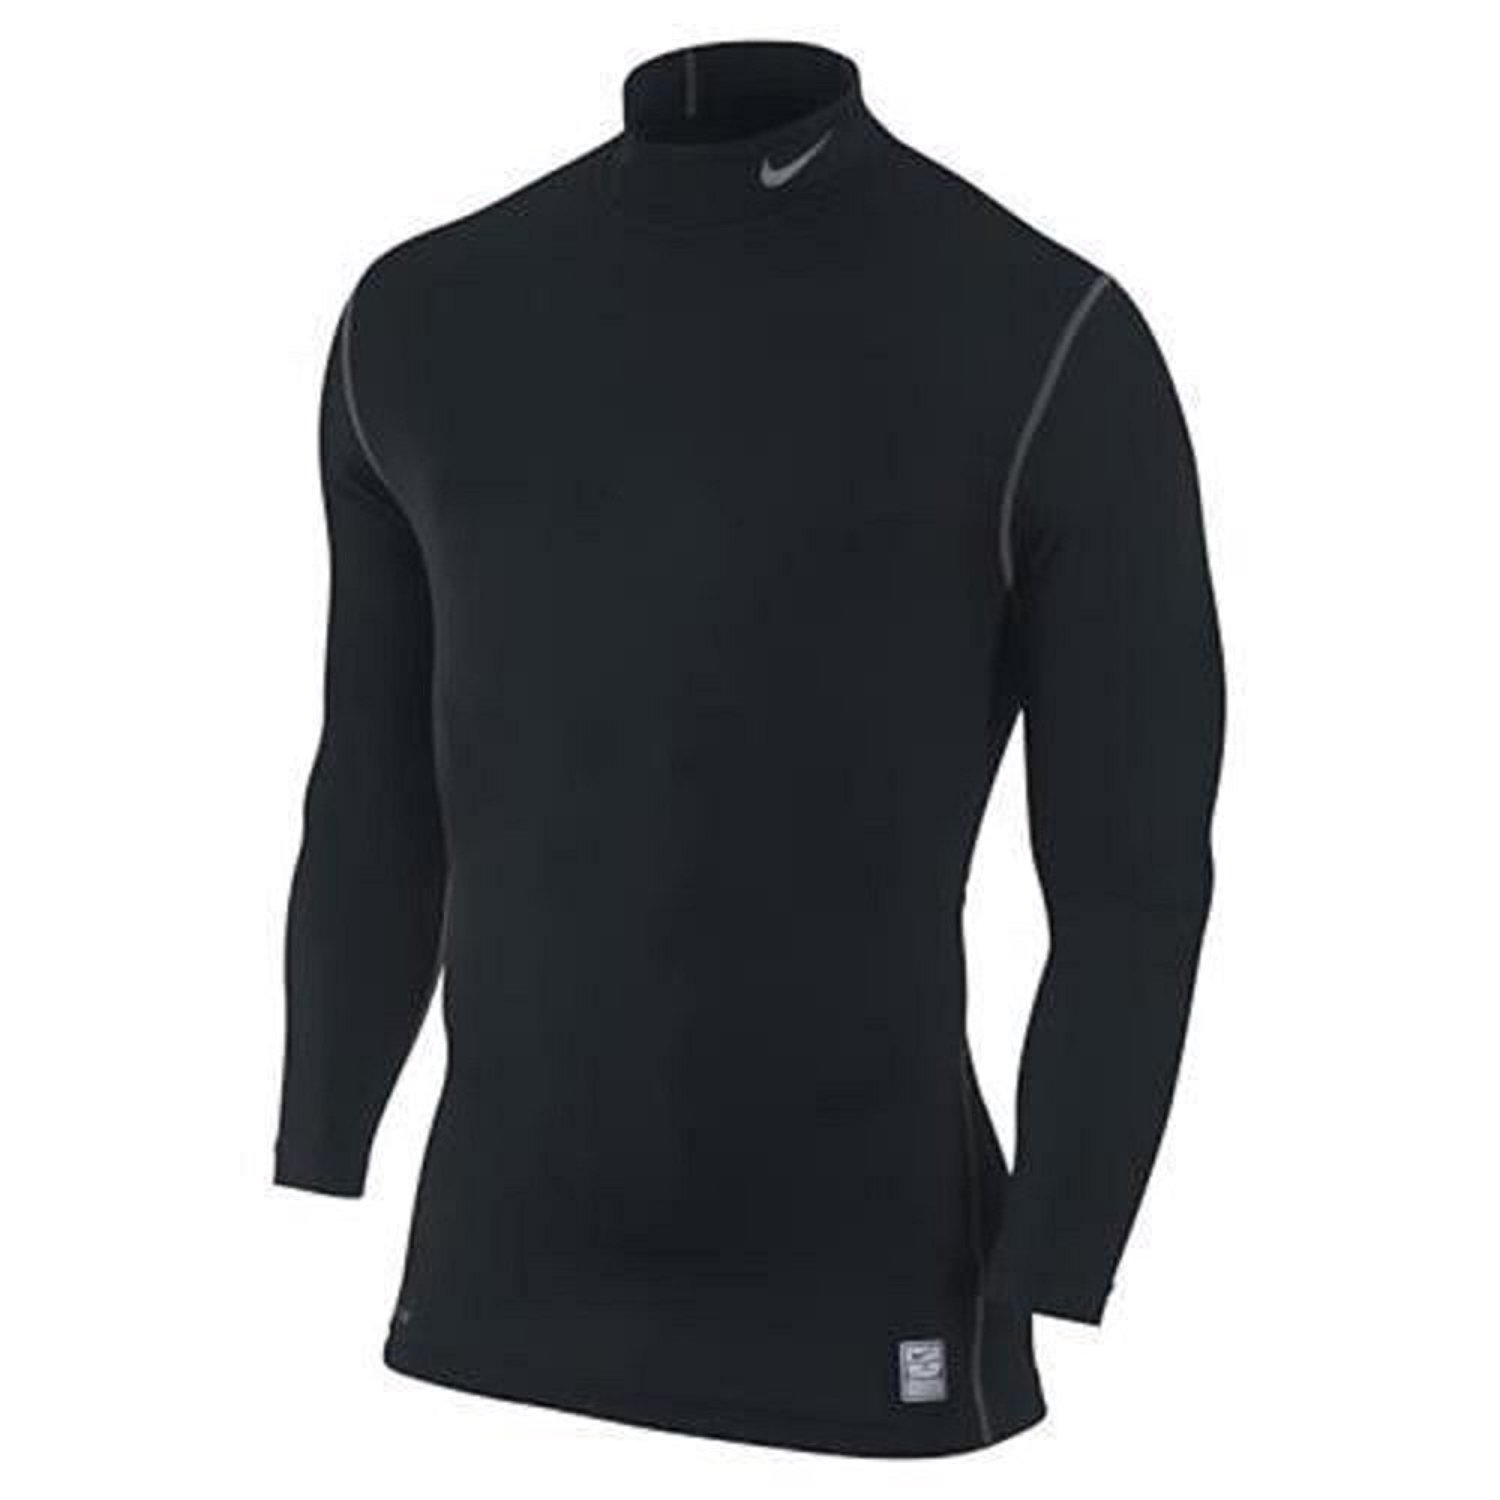 75e3552e Get Quotations · Nike Mens Pro Hyperwarm Dri-FIT Max Compression Mock Long  Sleeve Shirt